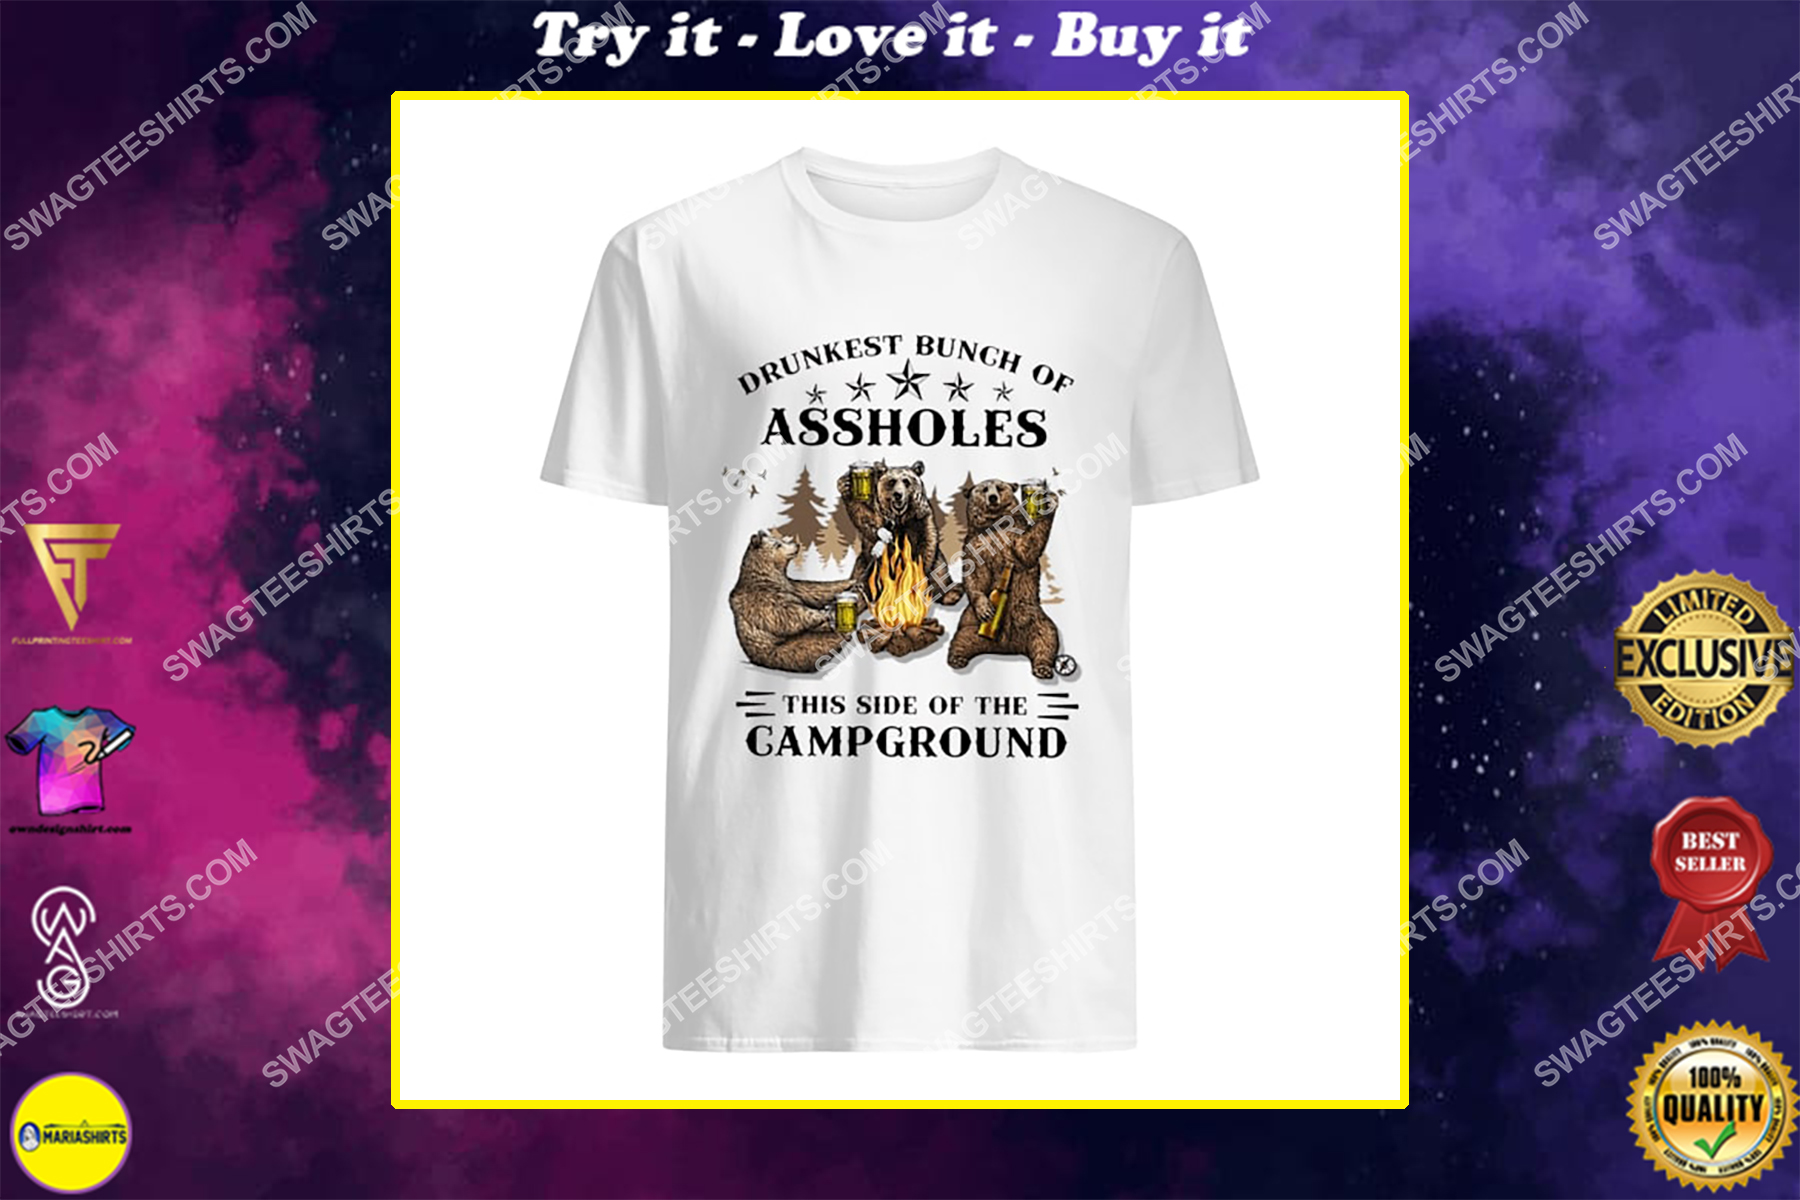 bear drunkest bunch of assholes this side of the campground for camper shirt